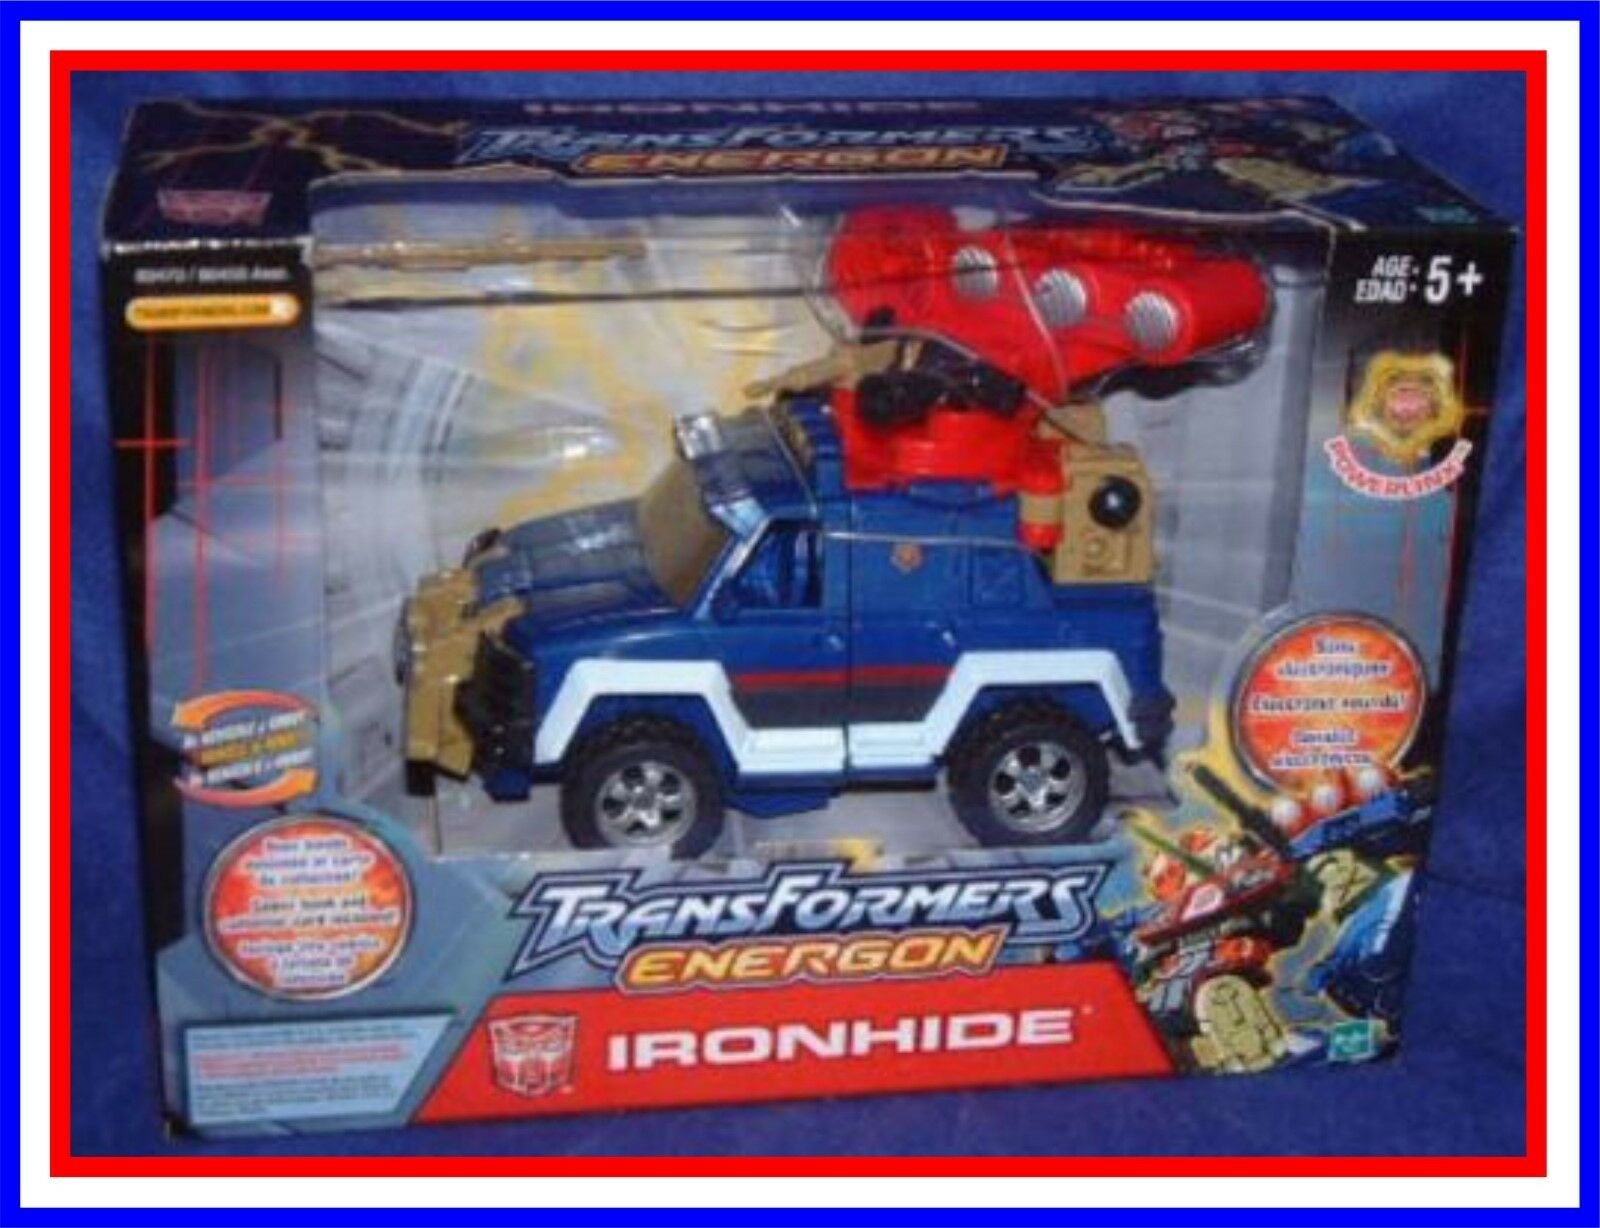 Transformers Energon _ Ironhide _  Mint in Factory Sealed Box